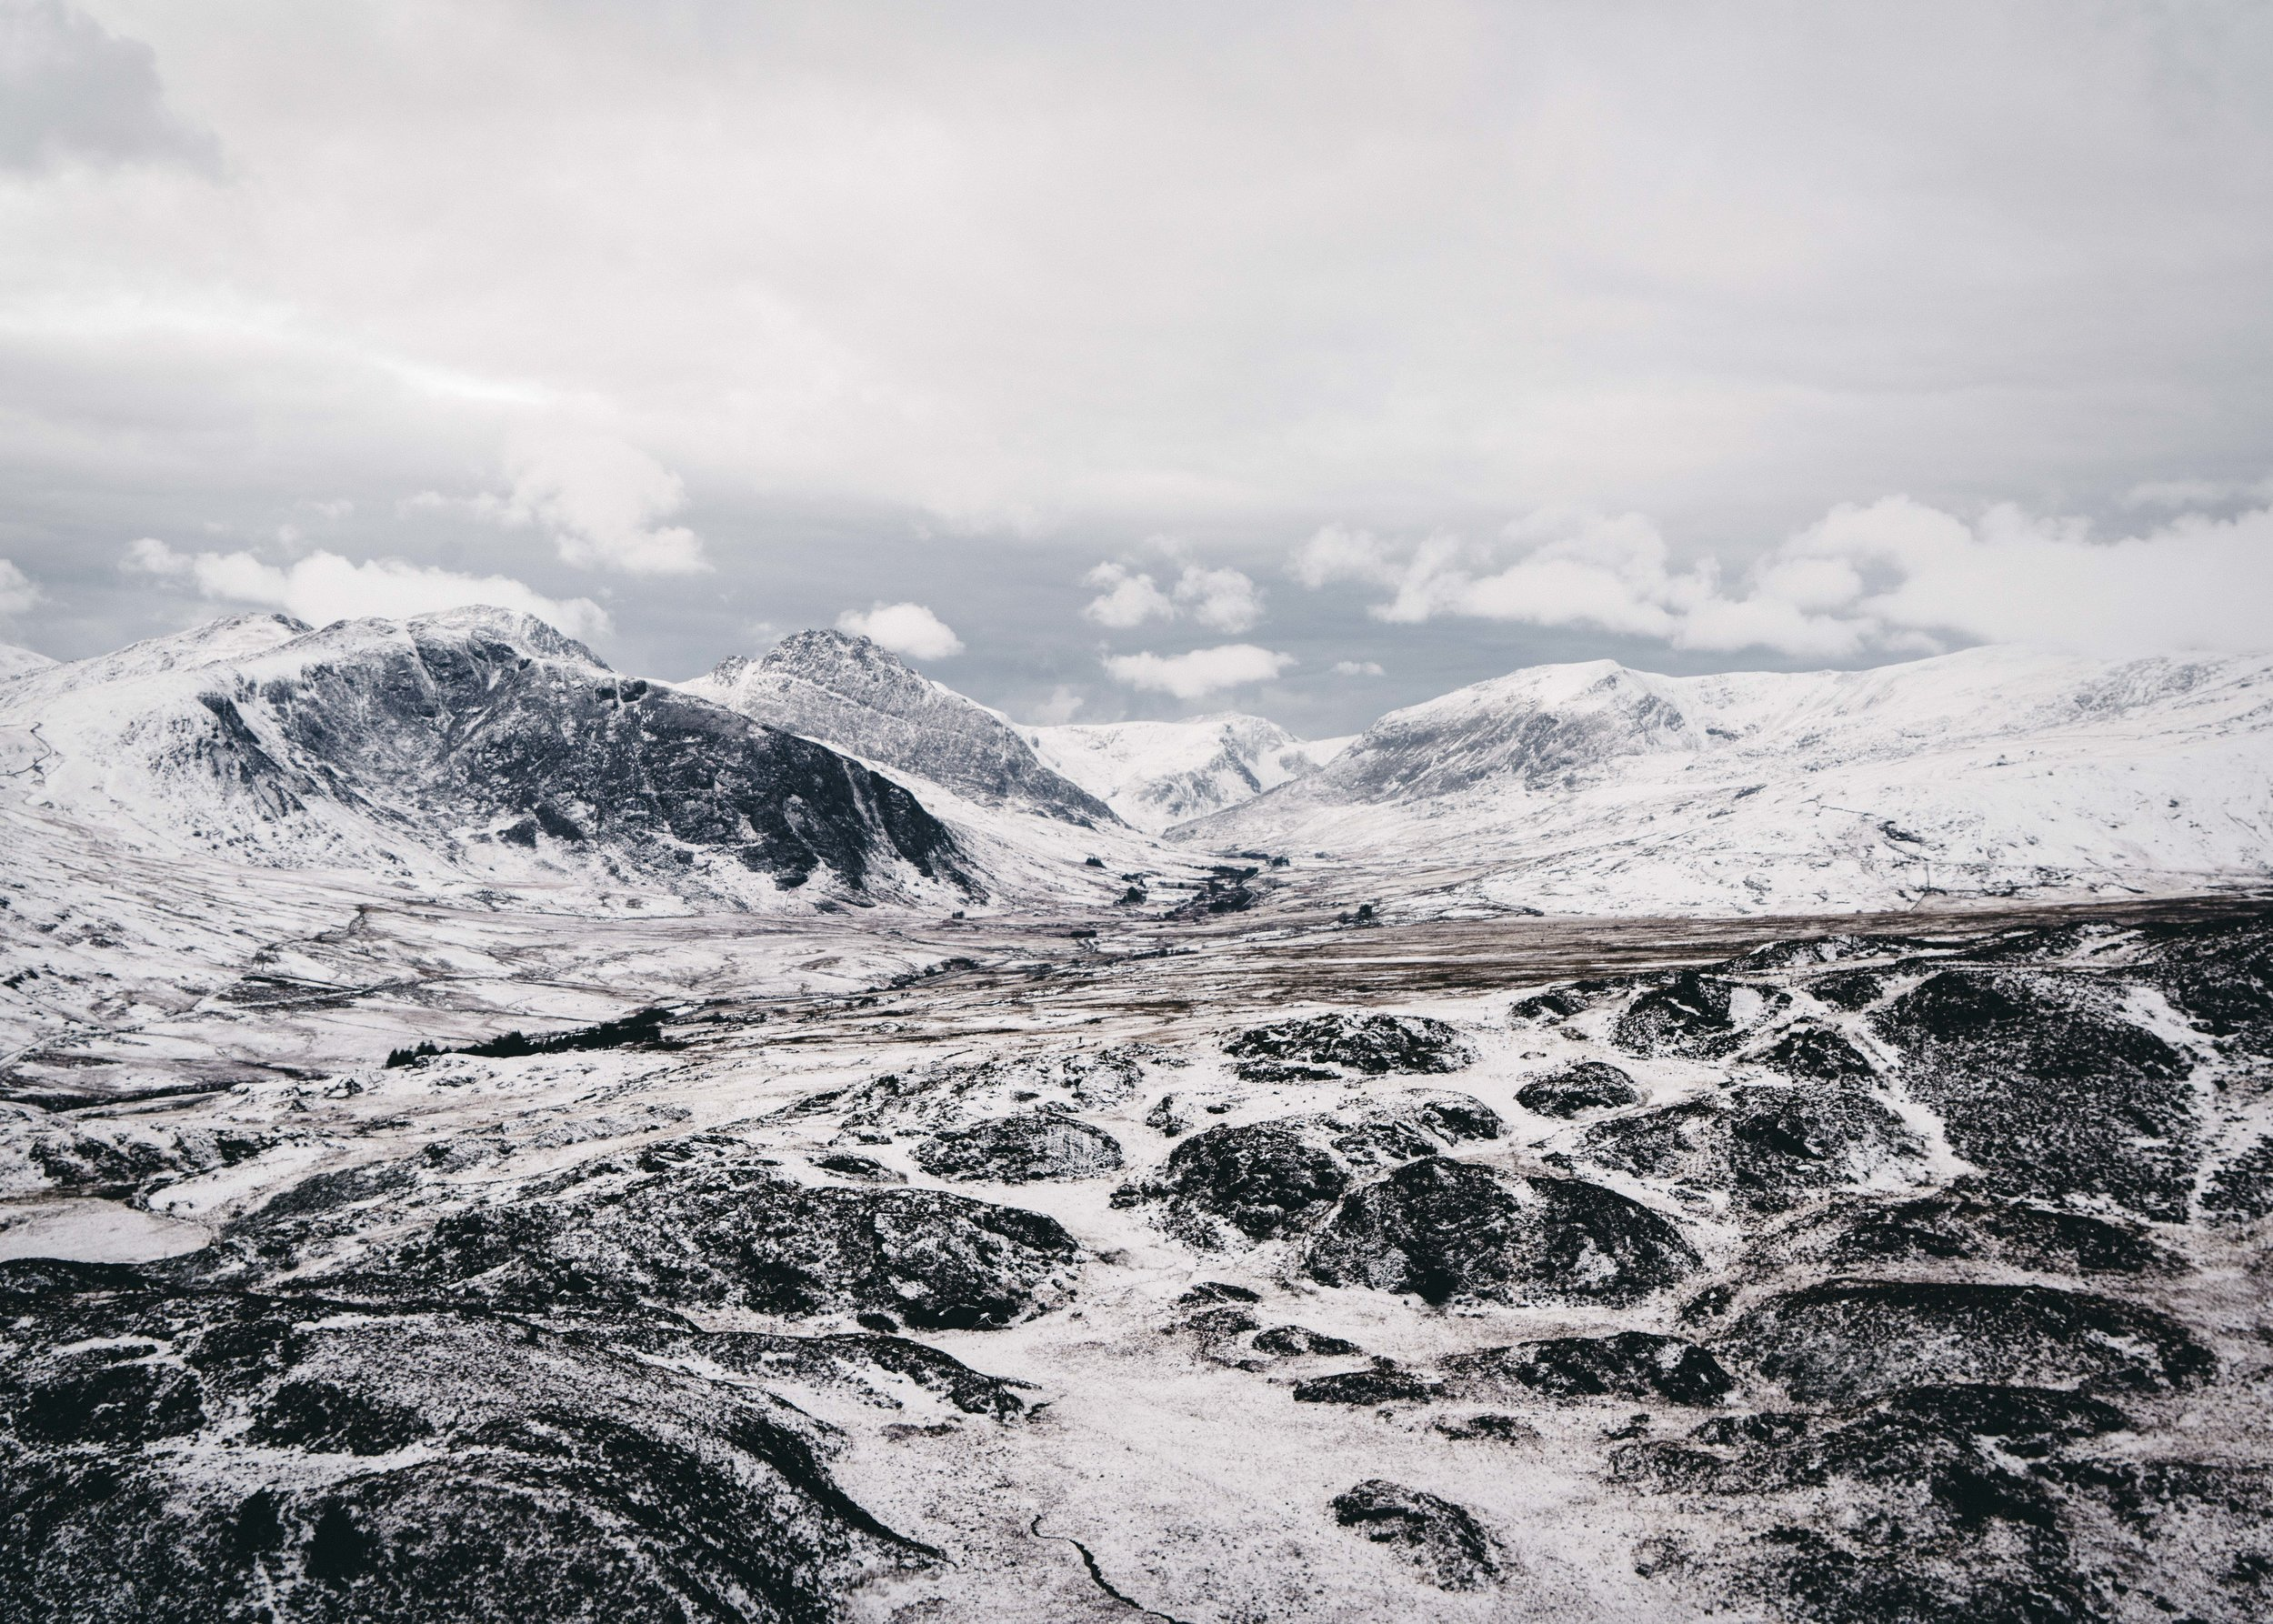 Looking across the Ogwen Valley from Crimpiau